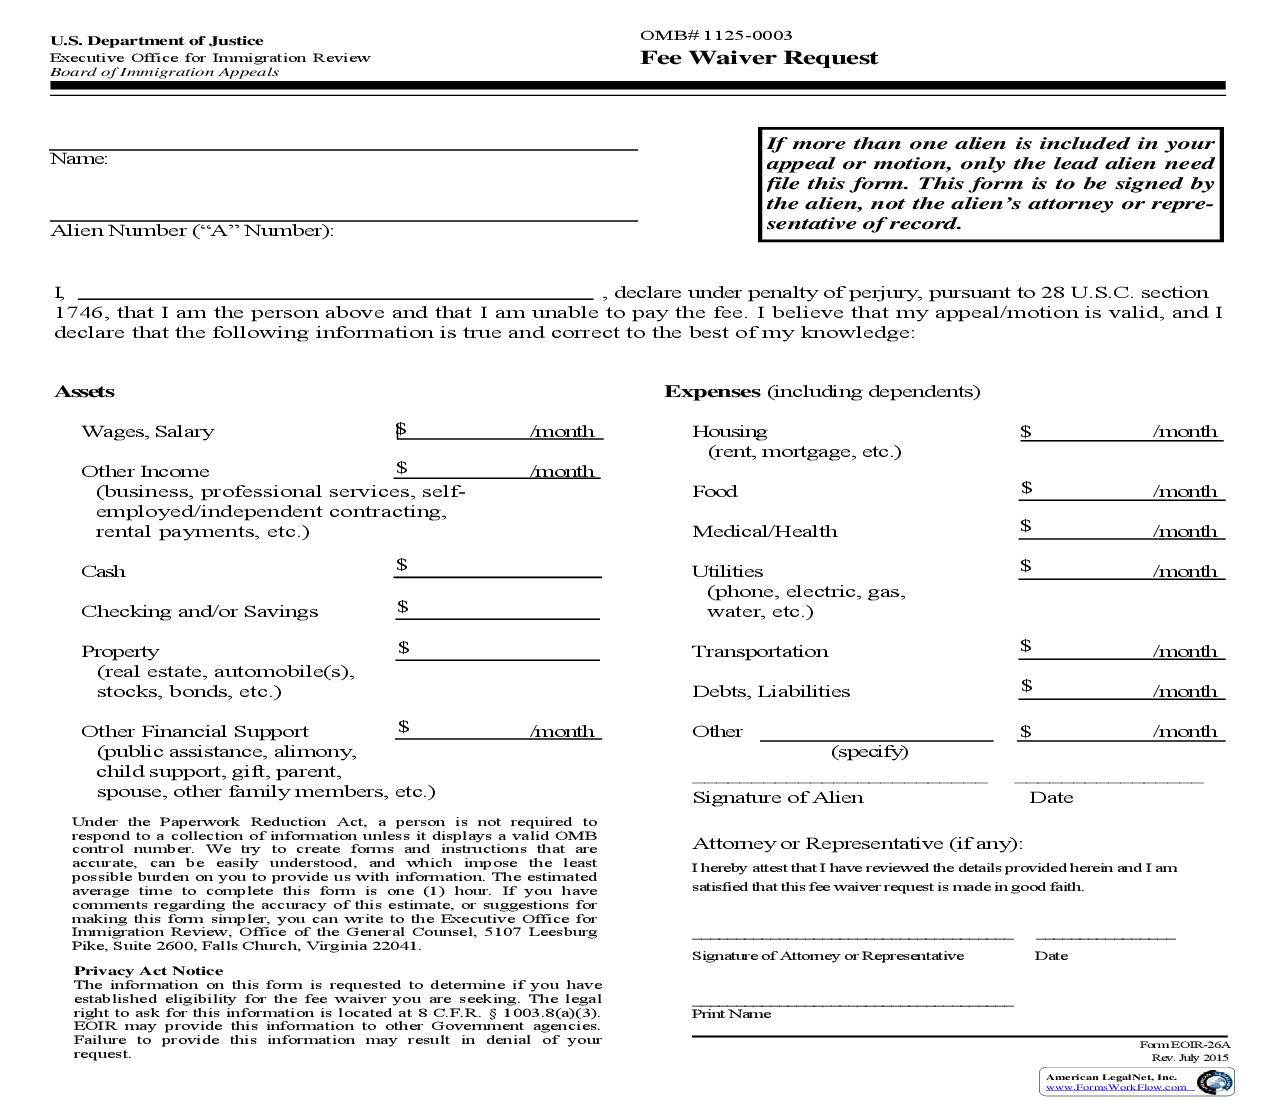 Fee Waiver Request {EOIR-26A}   Pdf Fpdf Doc Docx   Official Federal Forms